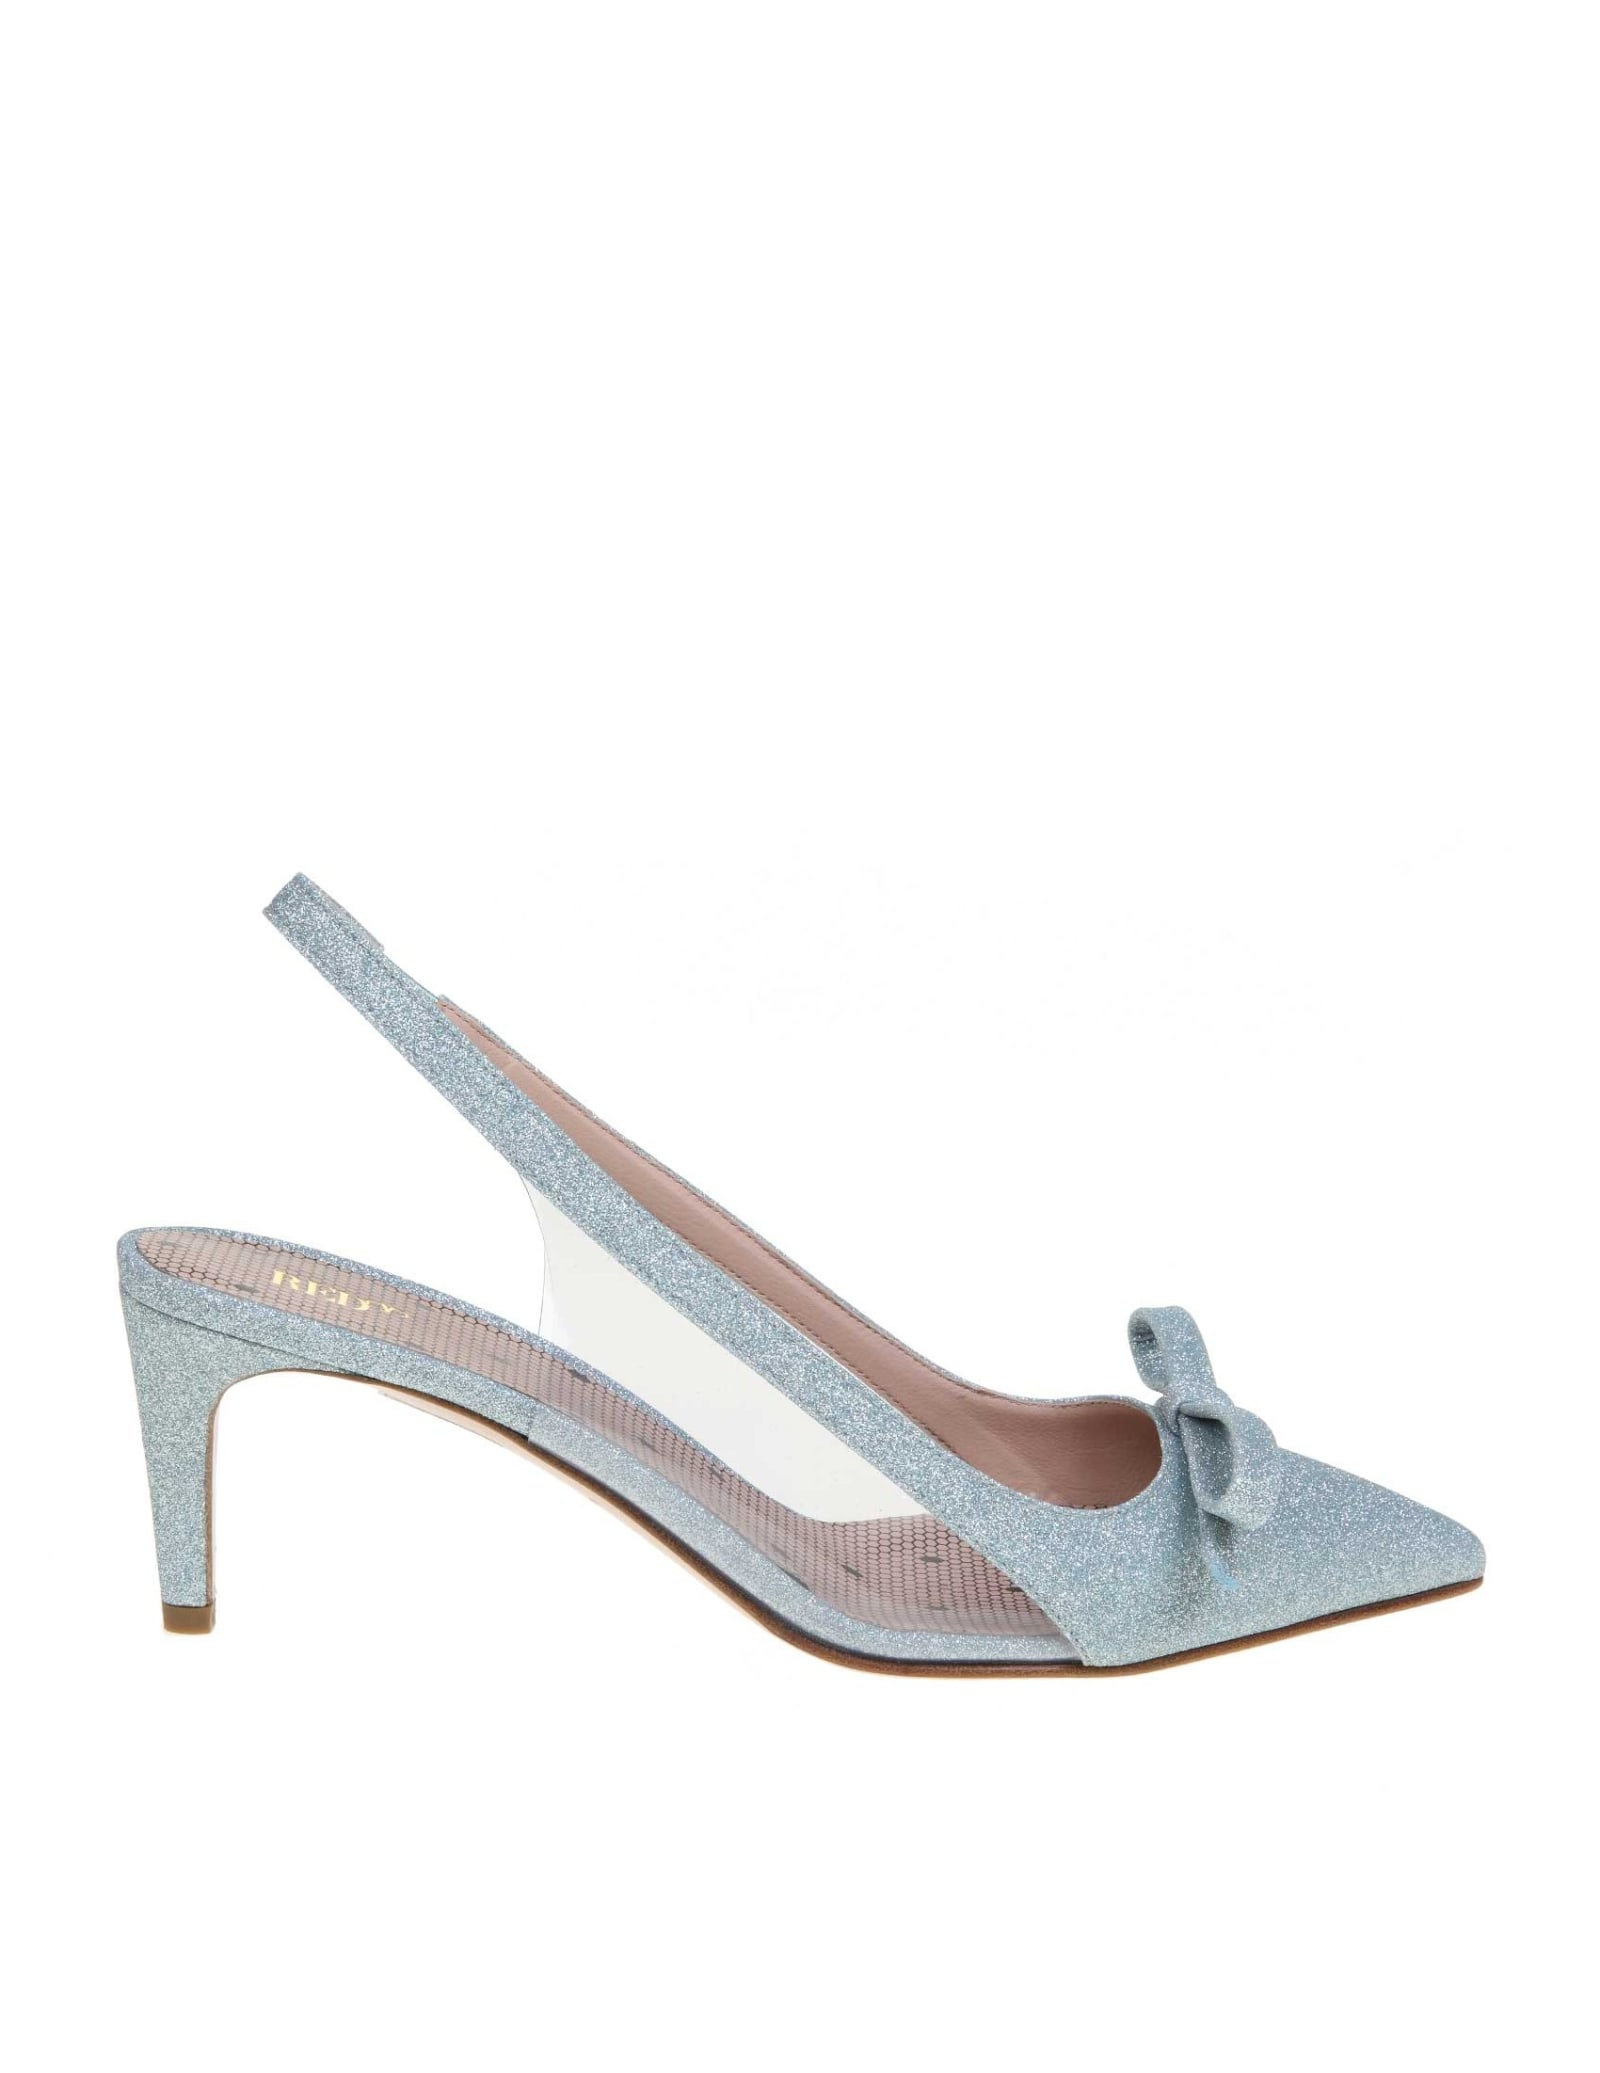 Slingback in glittered leather light blue colour pvc details pointed model decorative bow insole with polka dot pattern leather interior leather sole heel height 6 cm made in italy